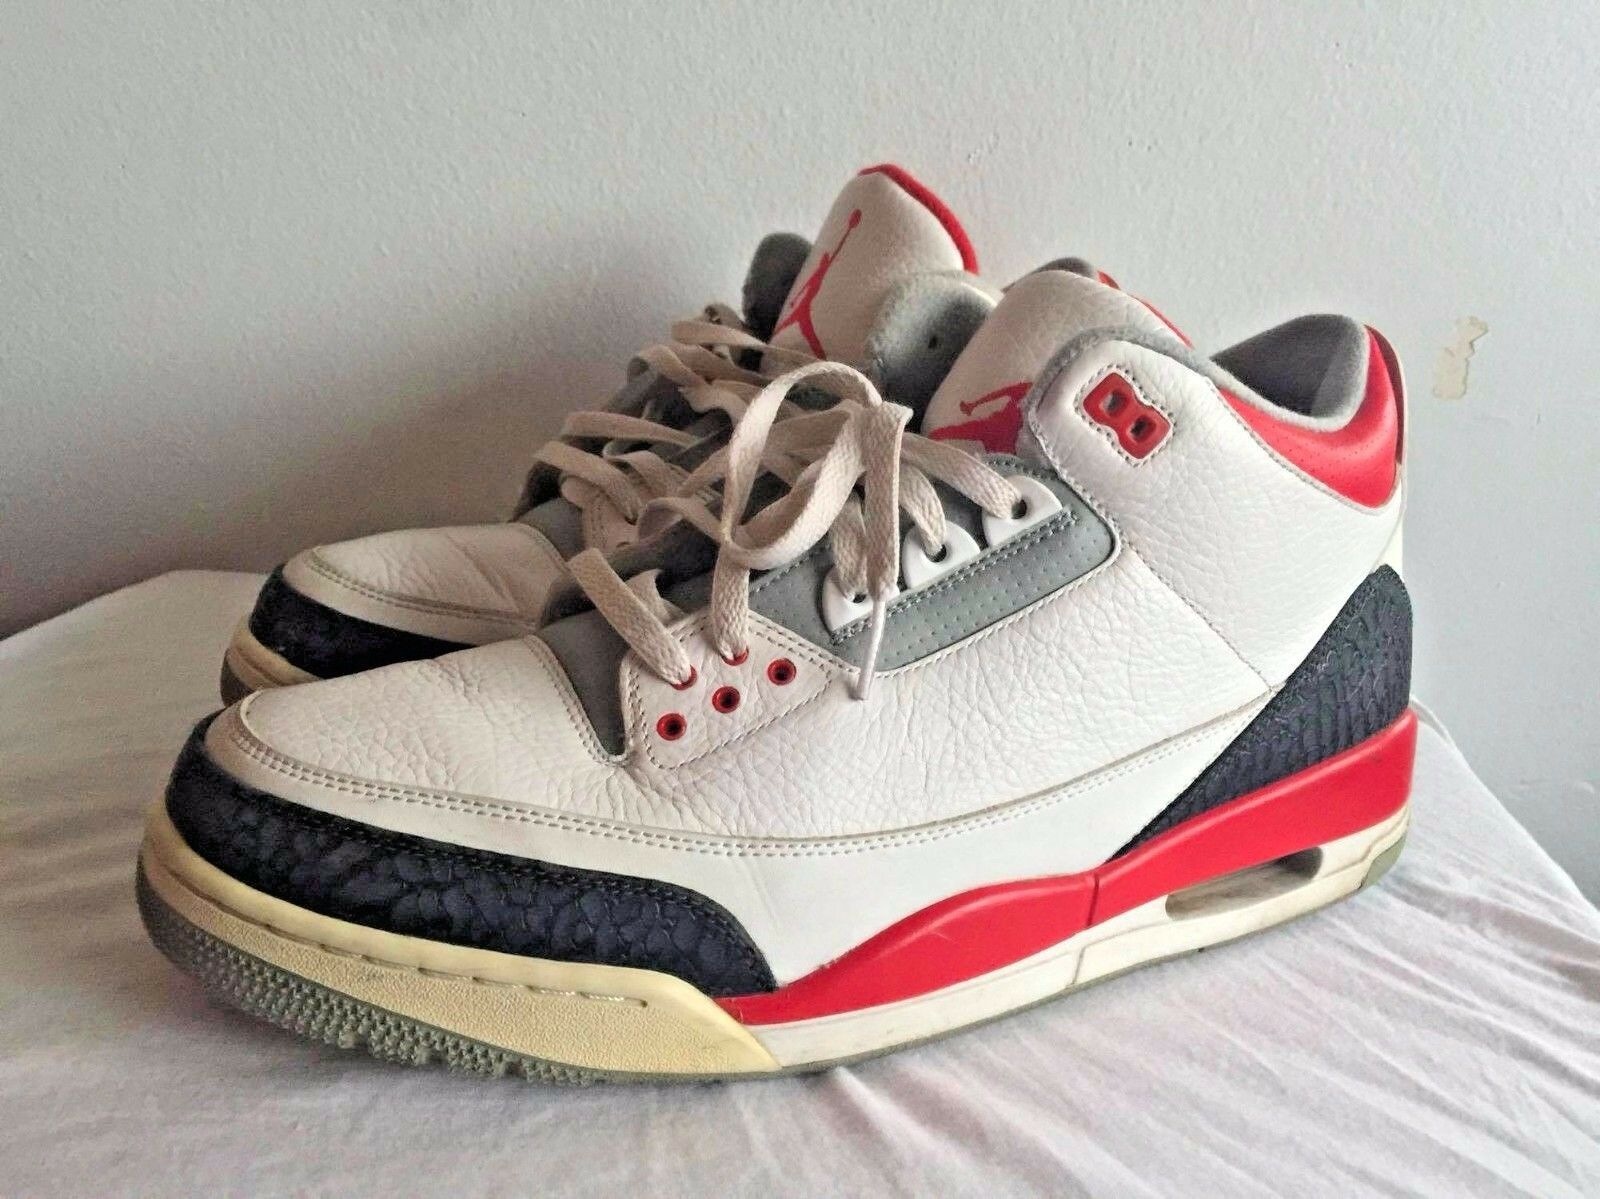 Nike Air Jordan Retro 3 Fire Red White Black Comfortable New shoes for men and women, limited time discount